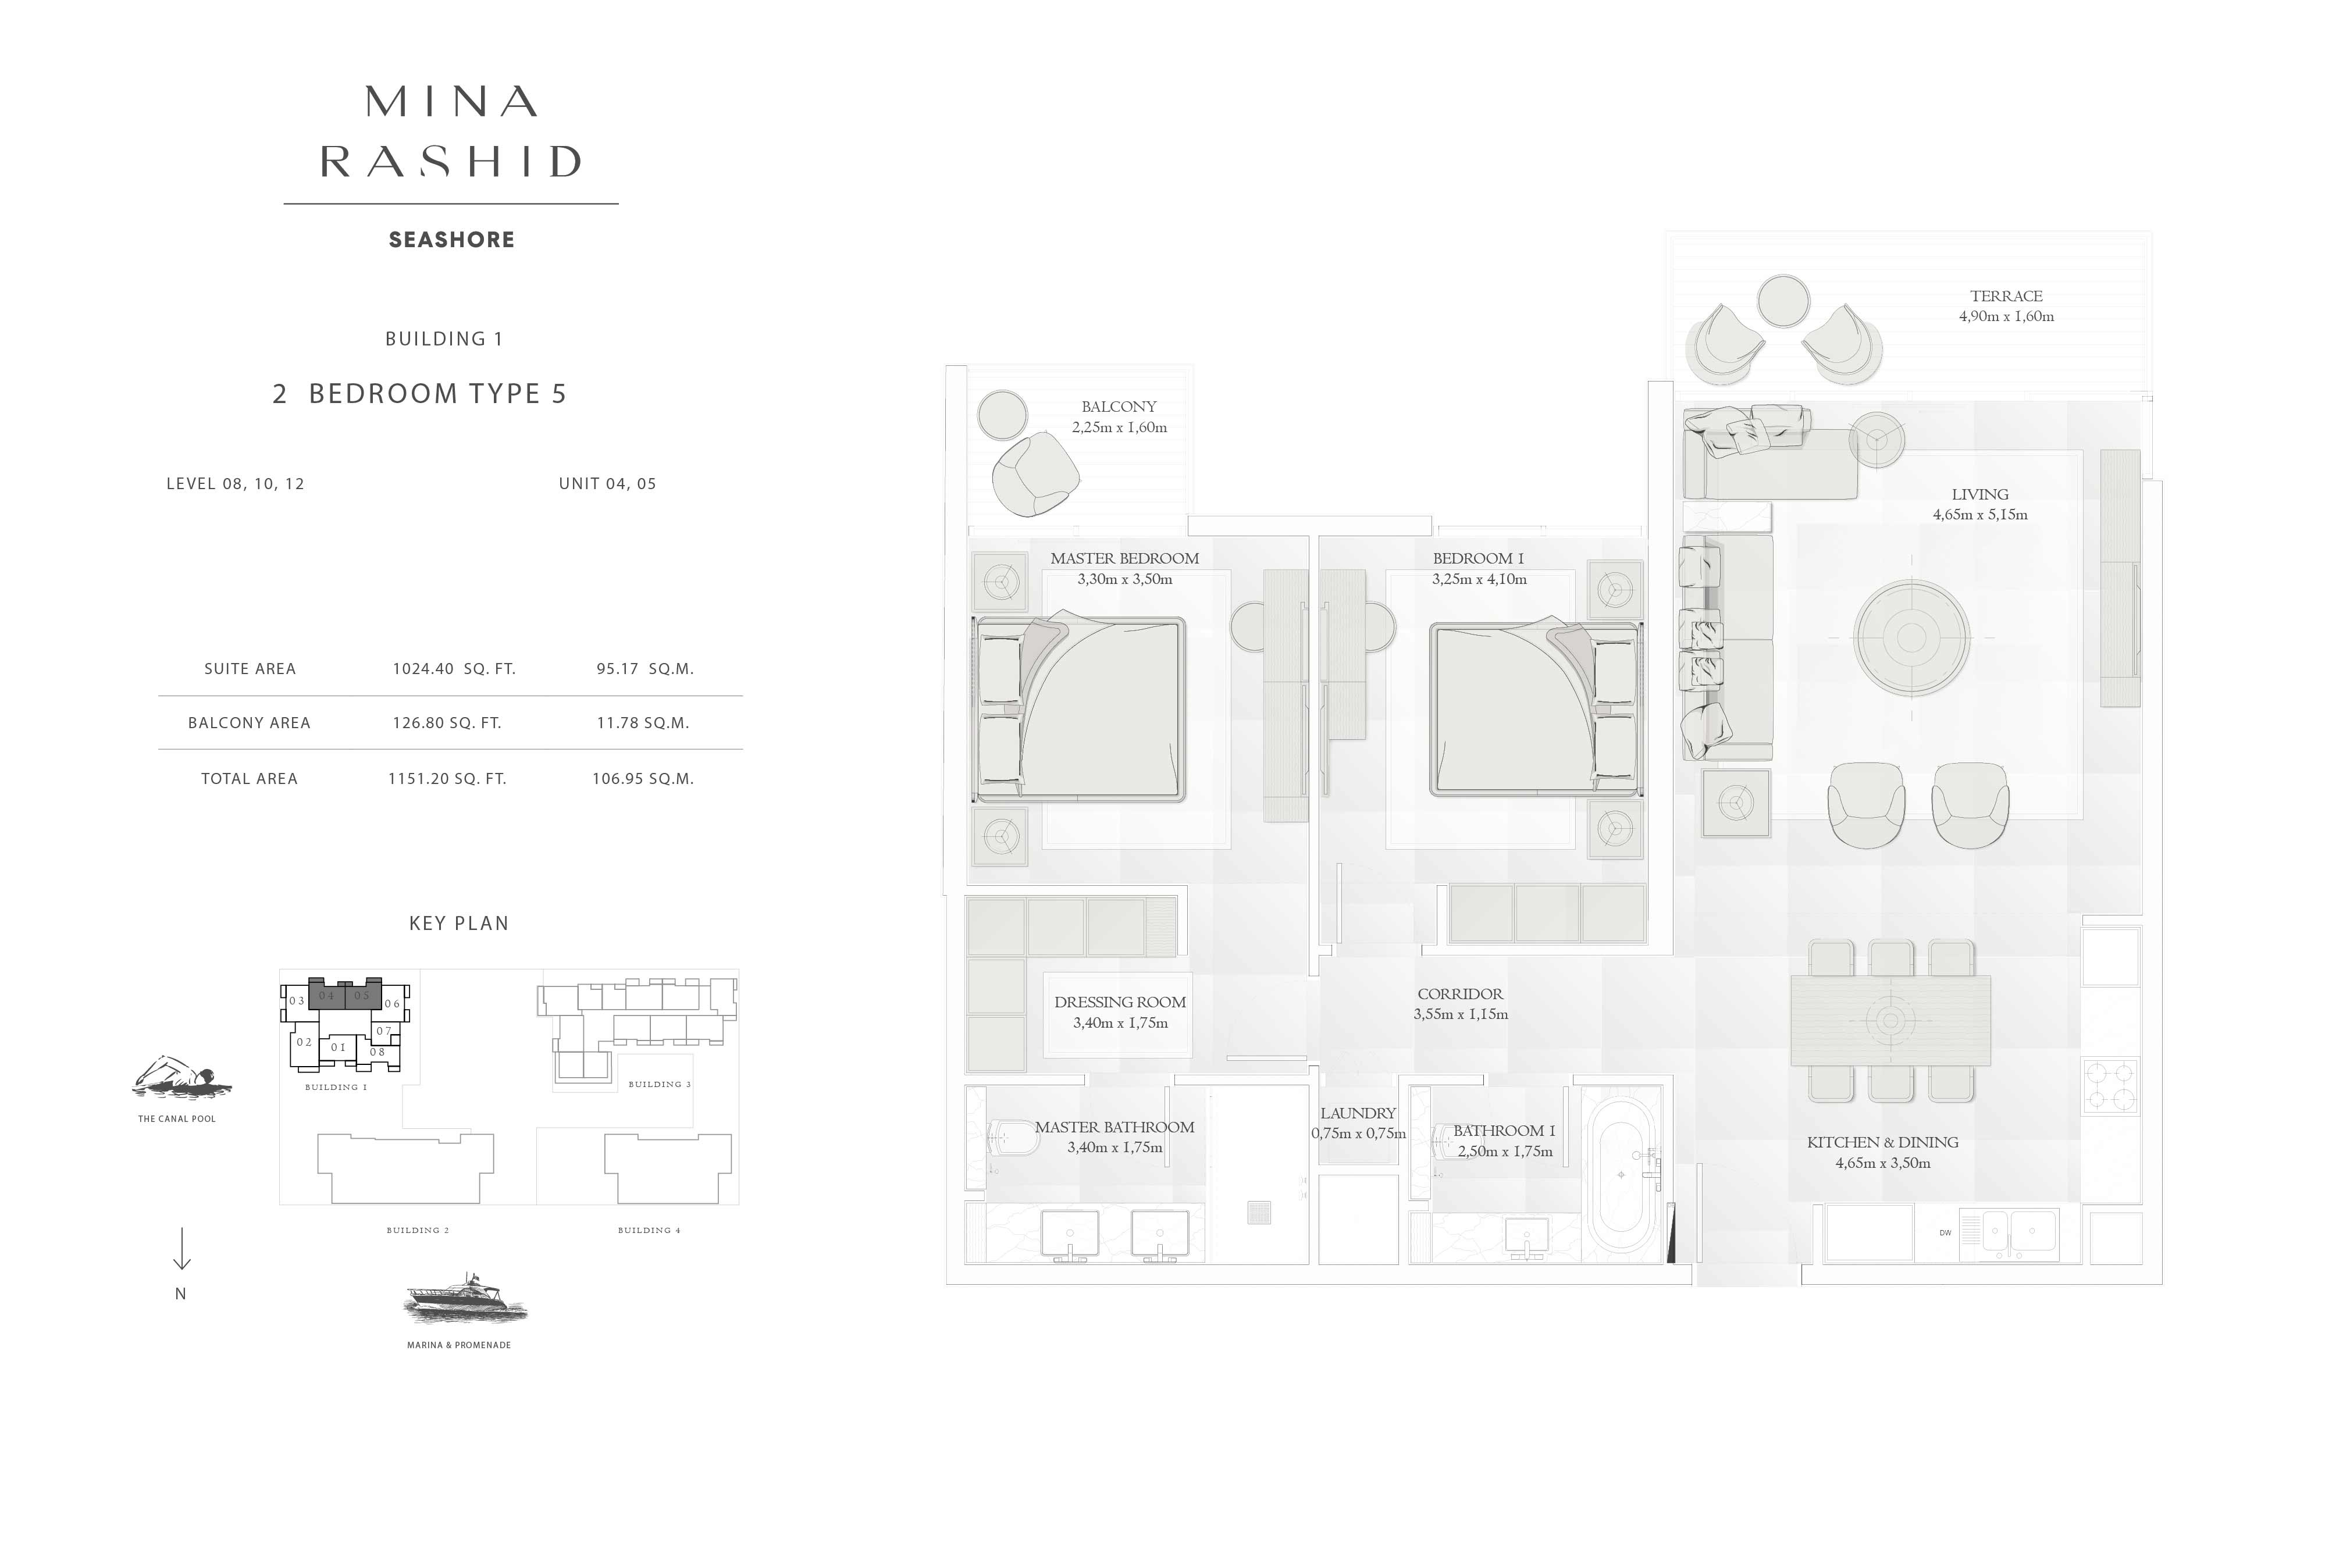 Building-1, 2-Bedroom-Type-5, Level(8, 10, 12), Size-1151-Sq-Ft